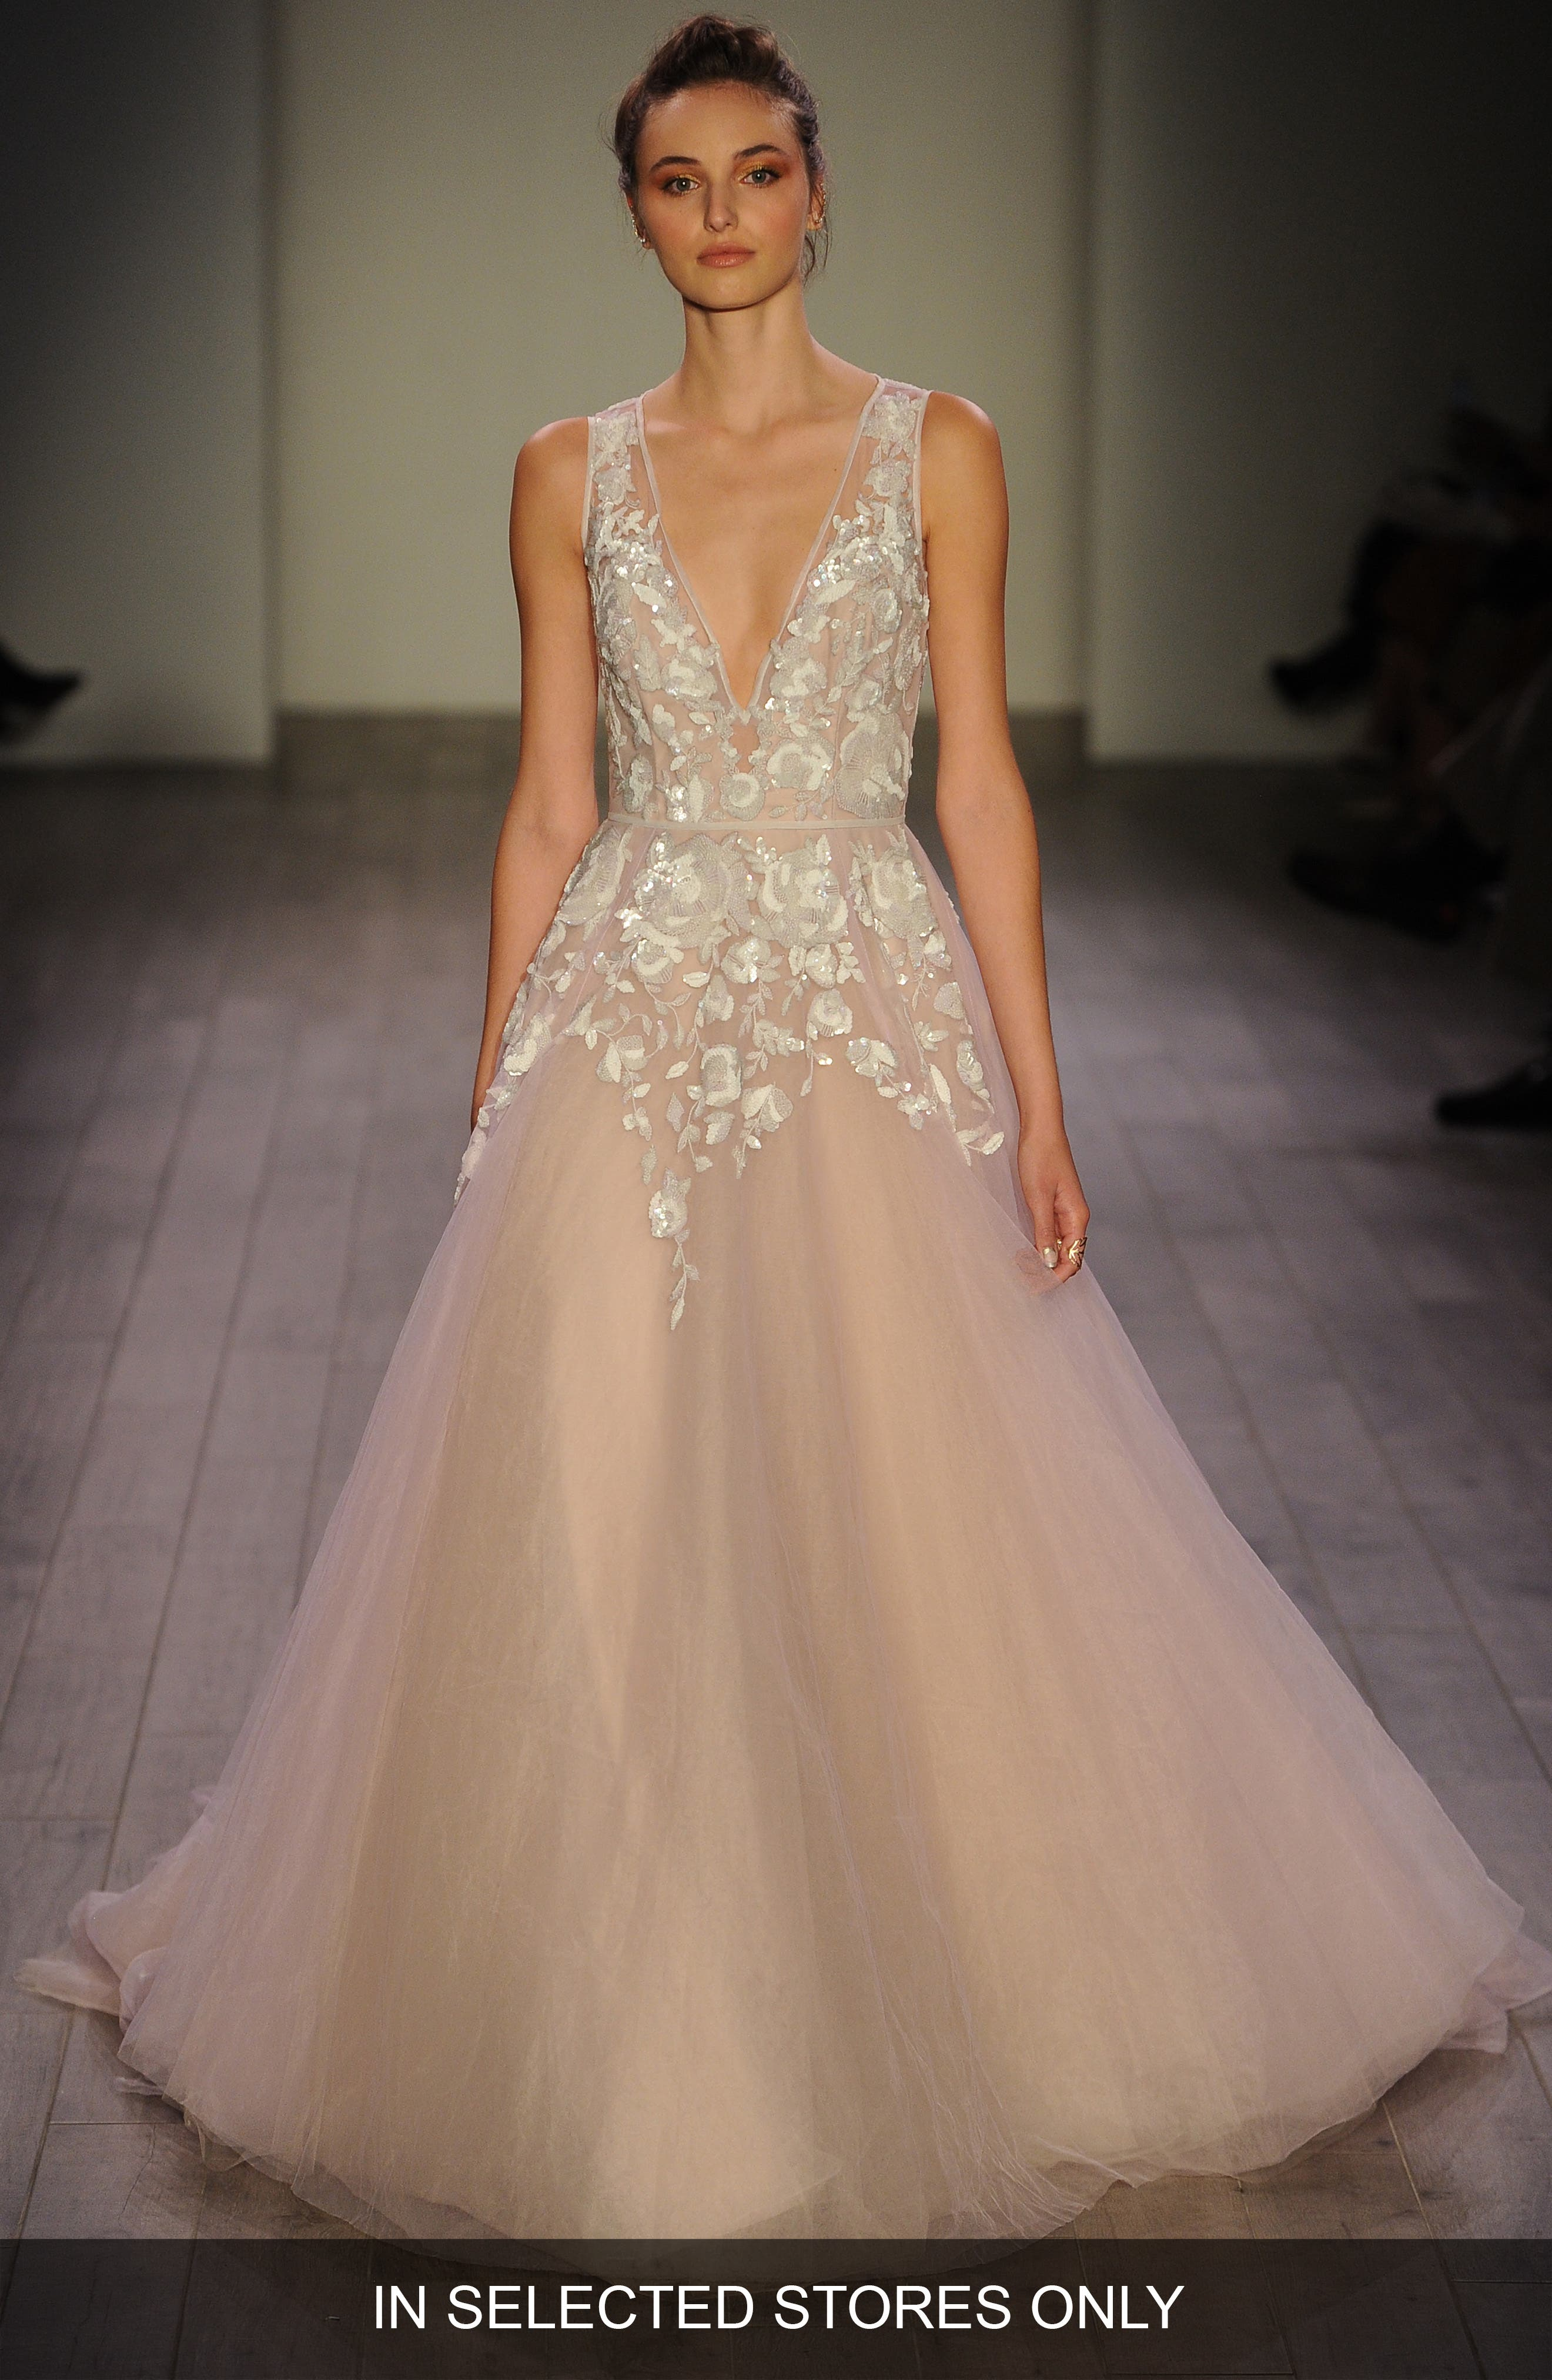 Main Image - Hayley Paige Leah Floral Sequin V-Neck Tulle Ballgown